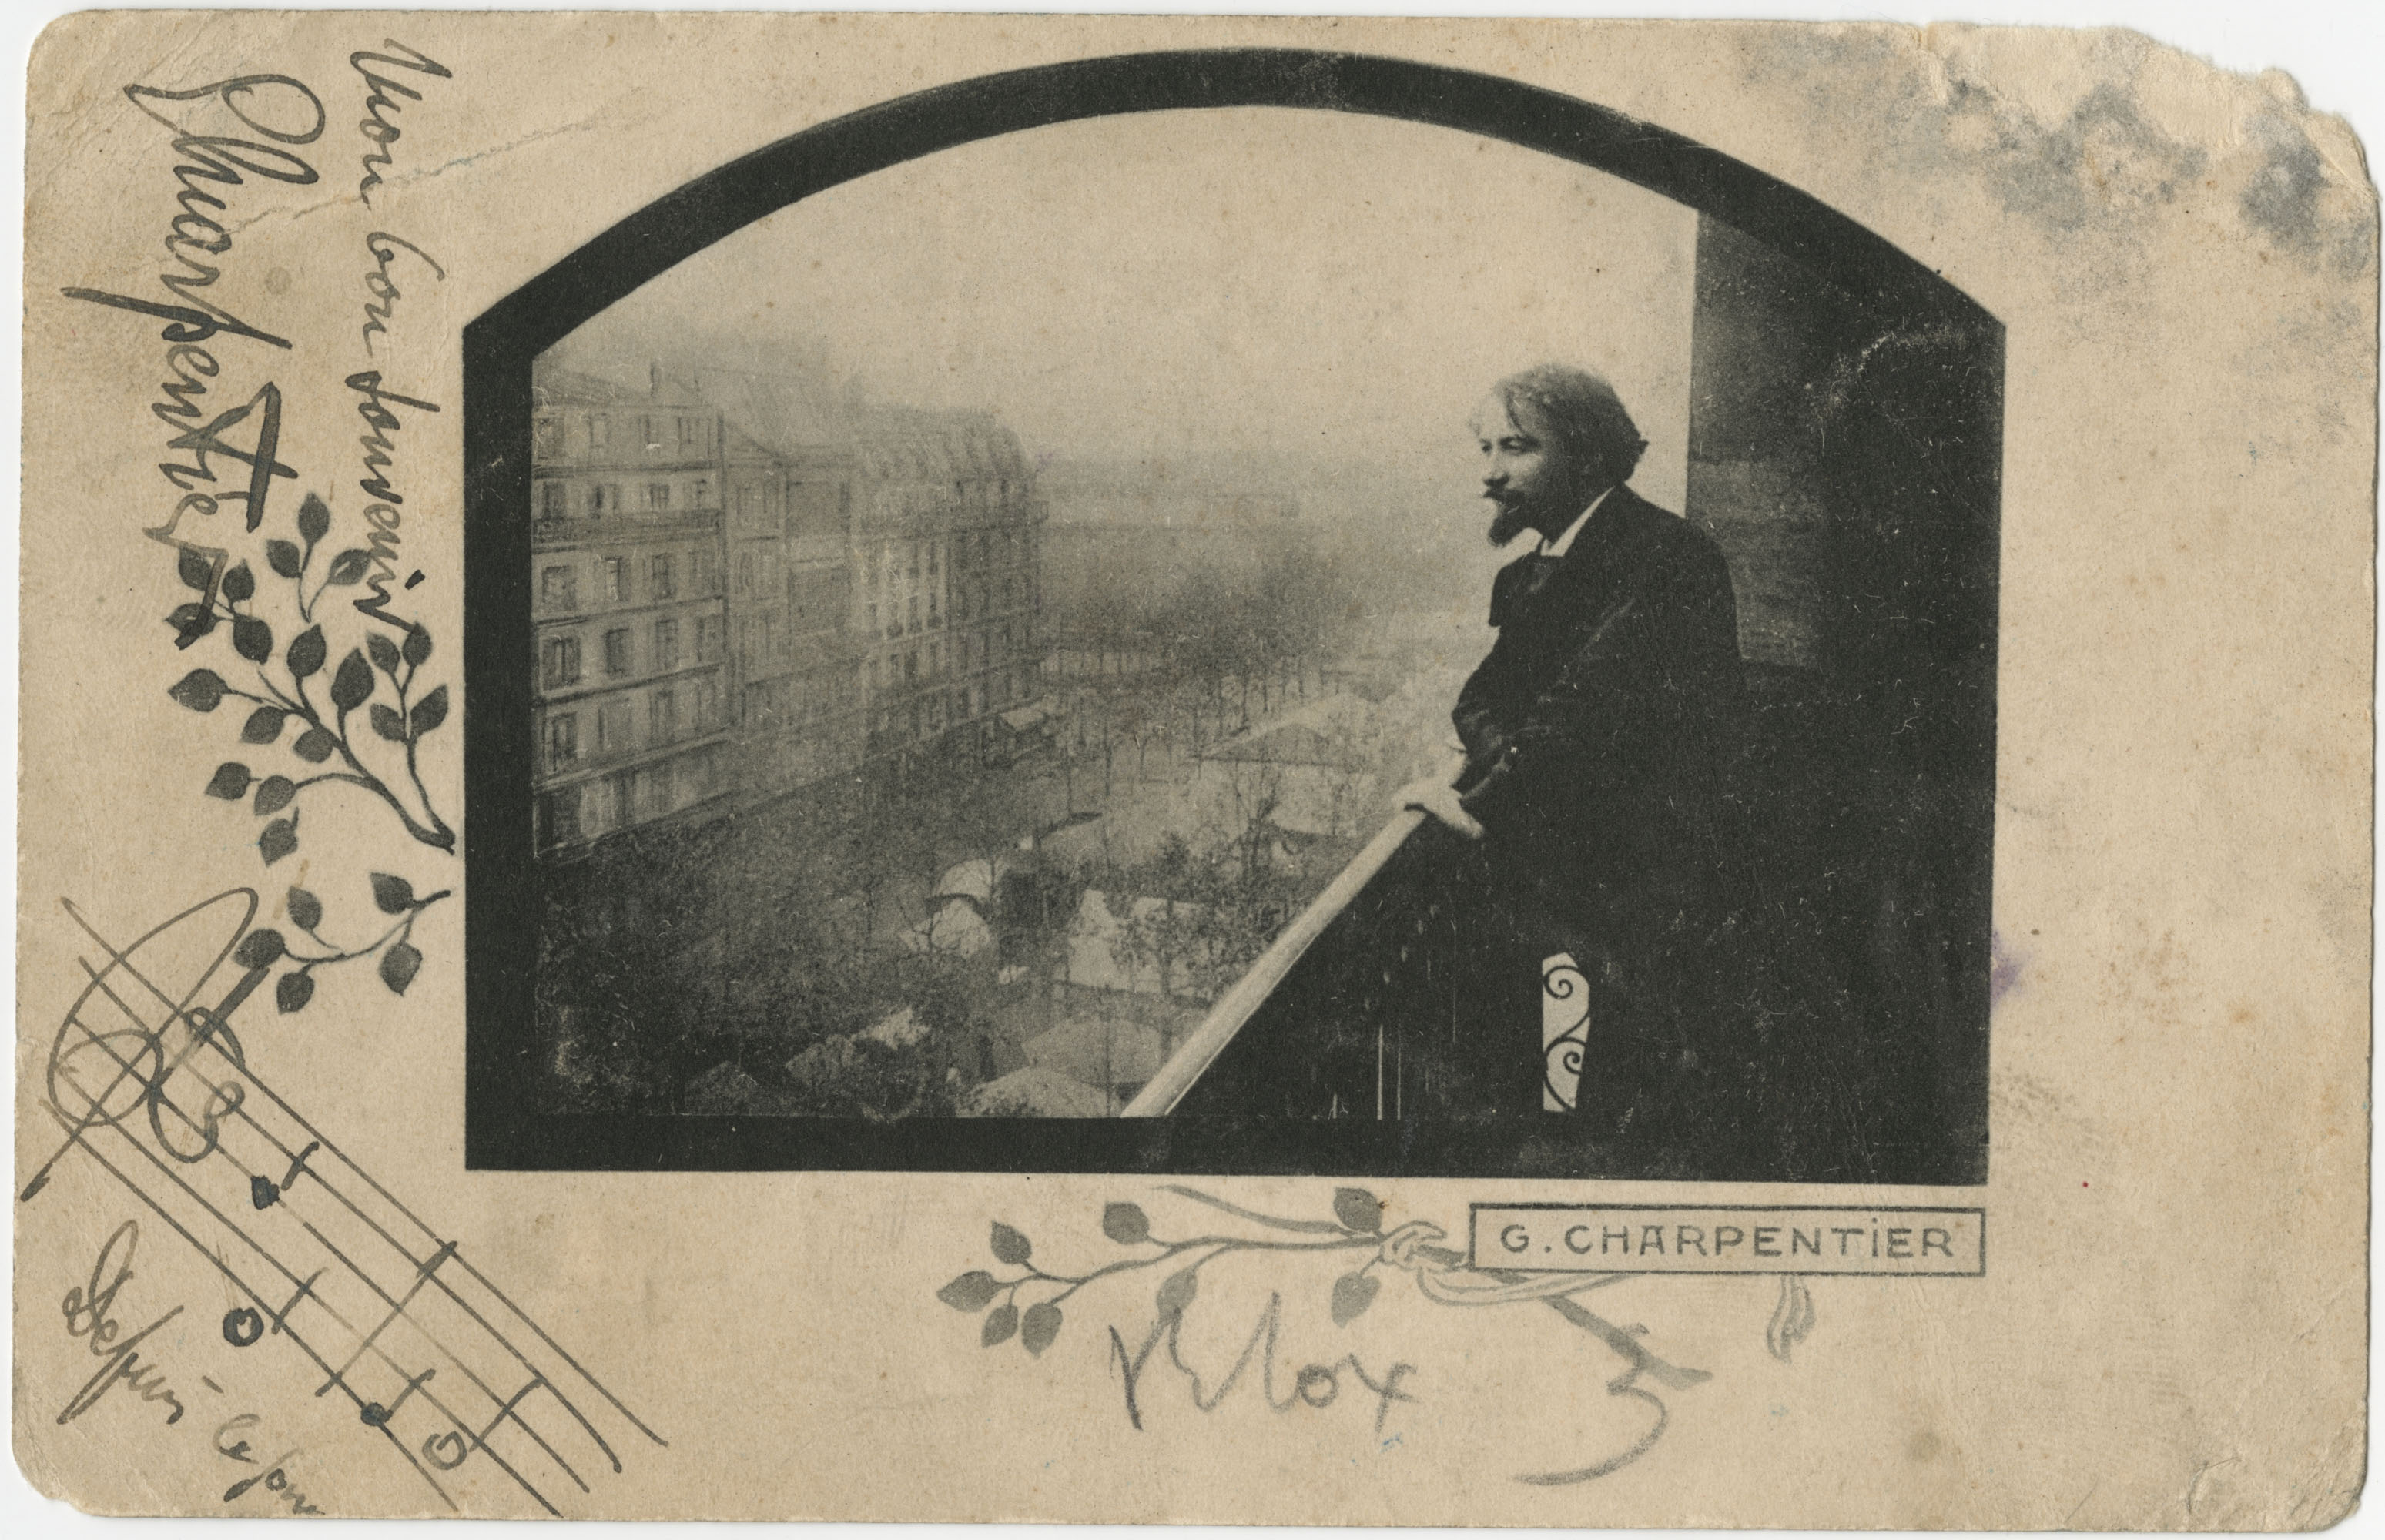 Picture Postcard from Gustave Charpentier to Meltzer